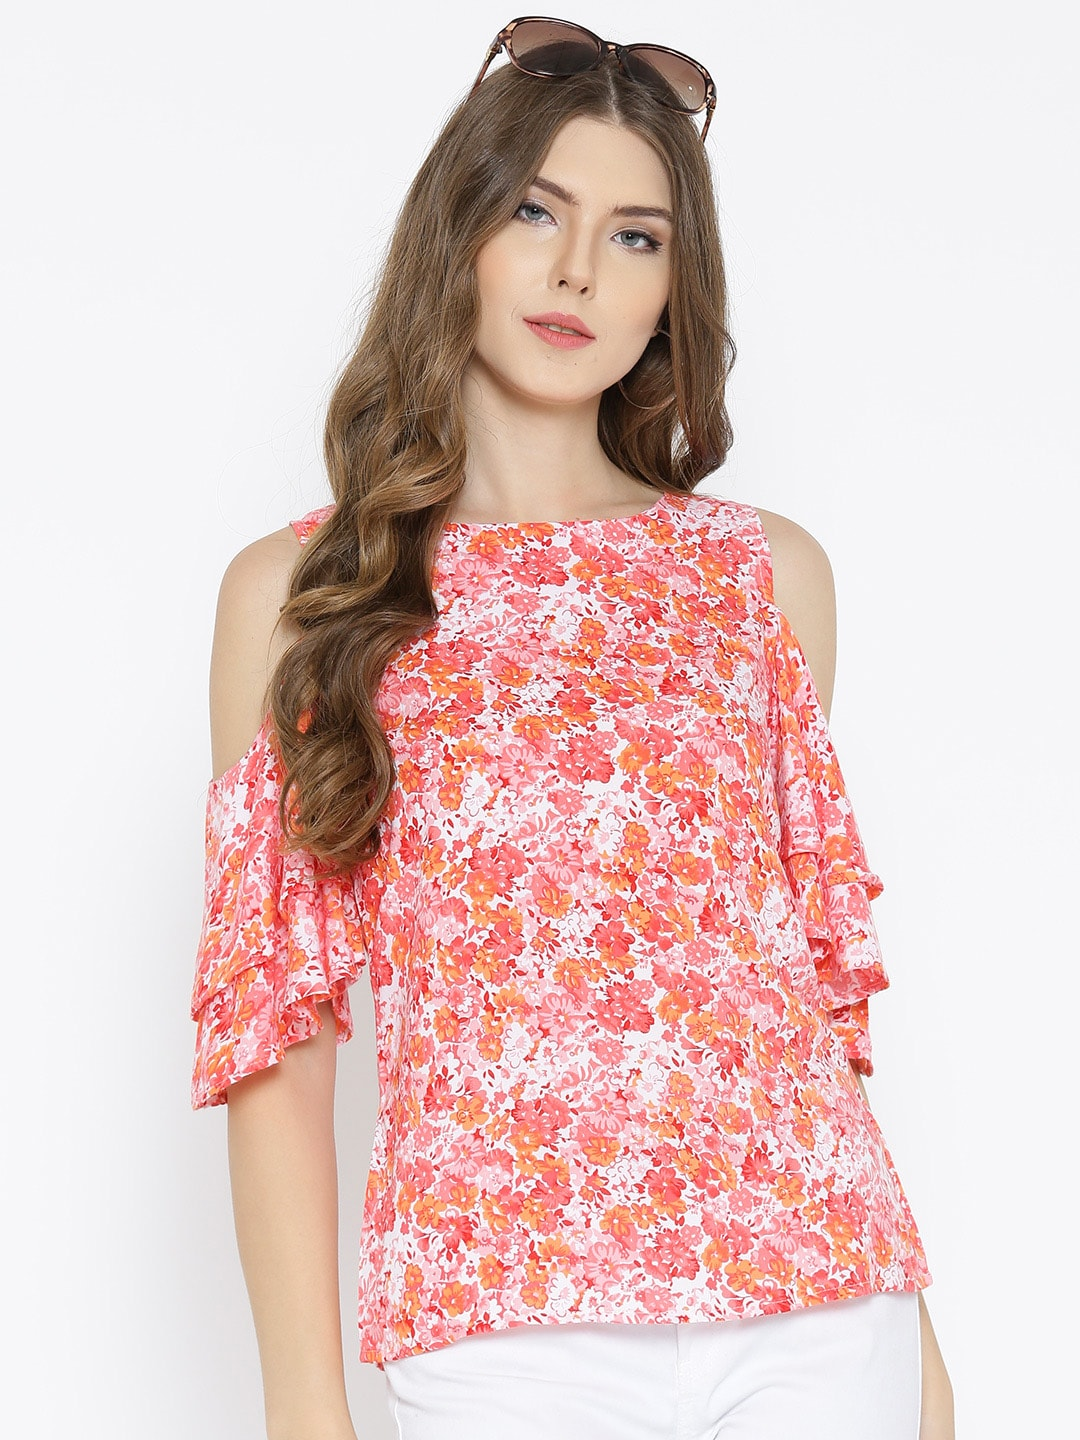 da561e47be80f Cold Shoulder Tops - Buy Cold Shoulder Tops for Women Online - Myntra